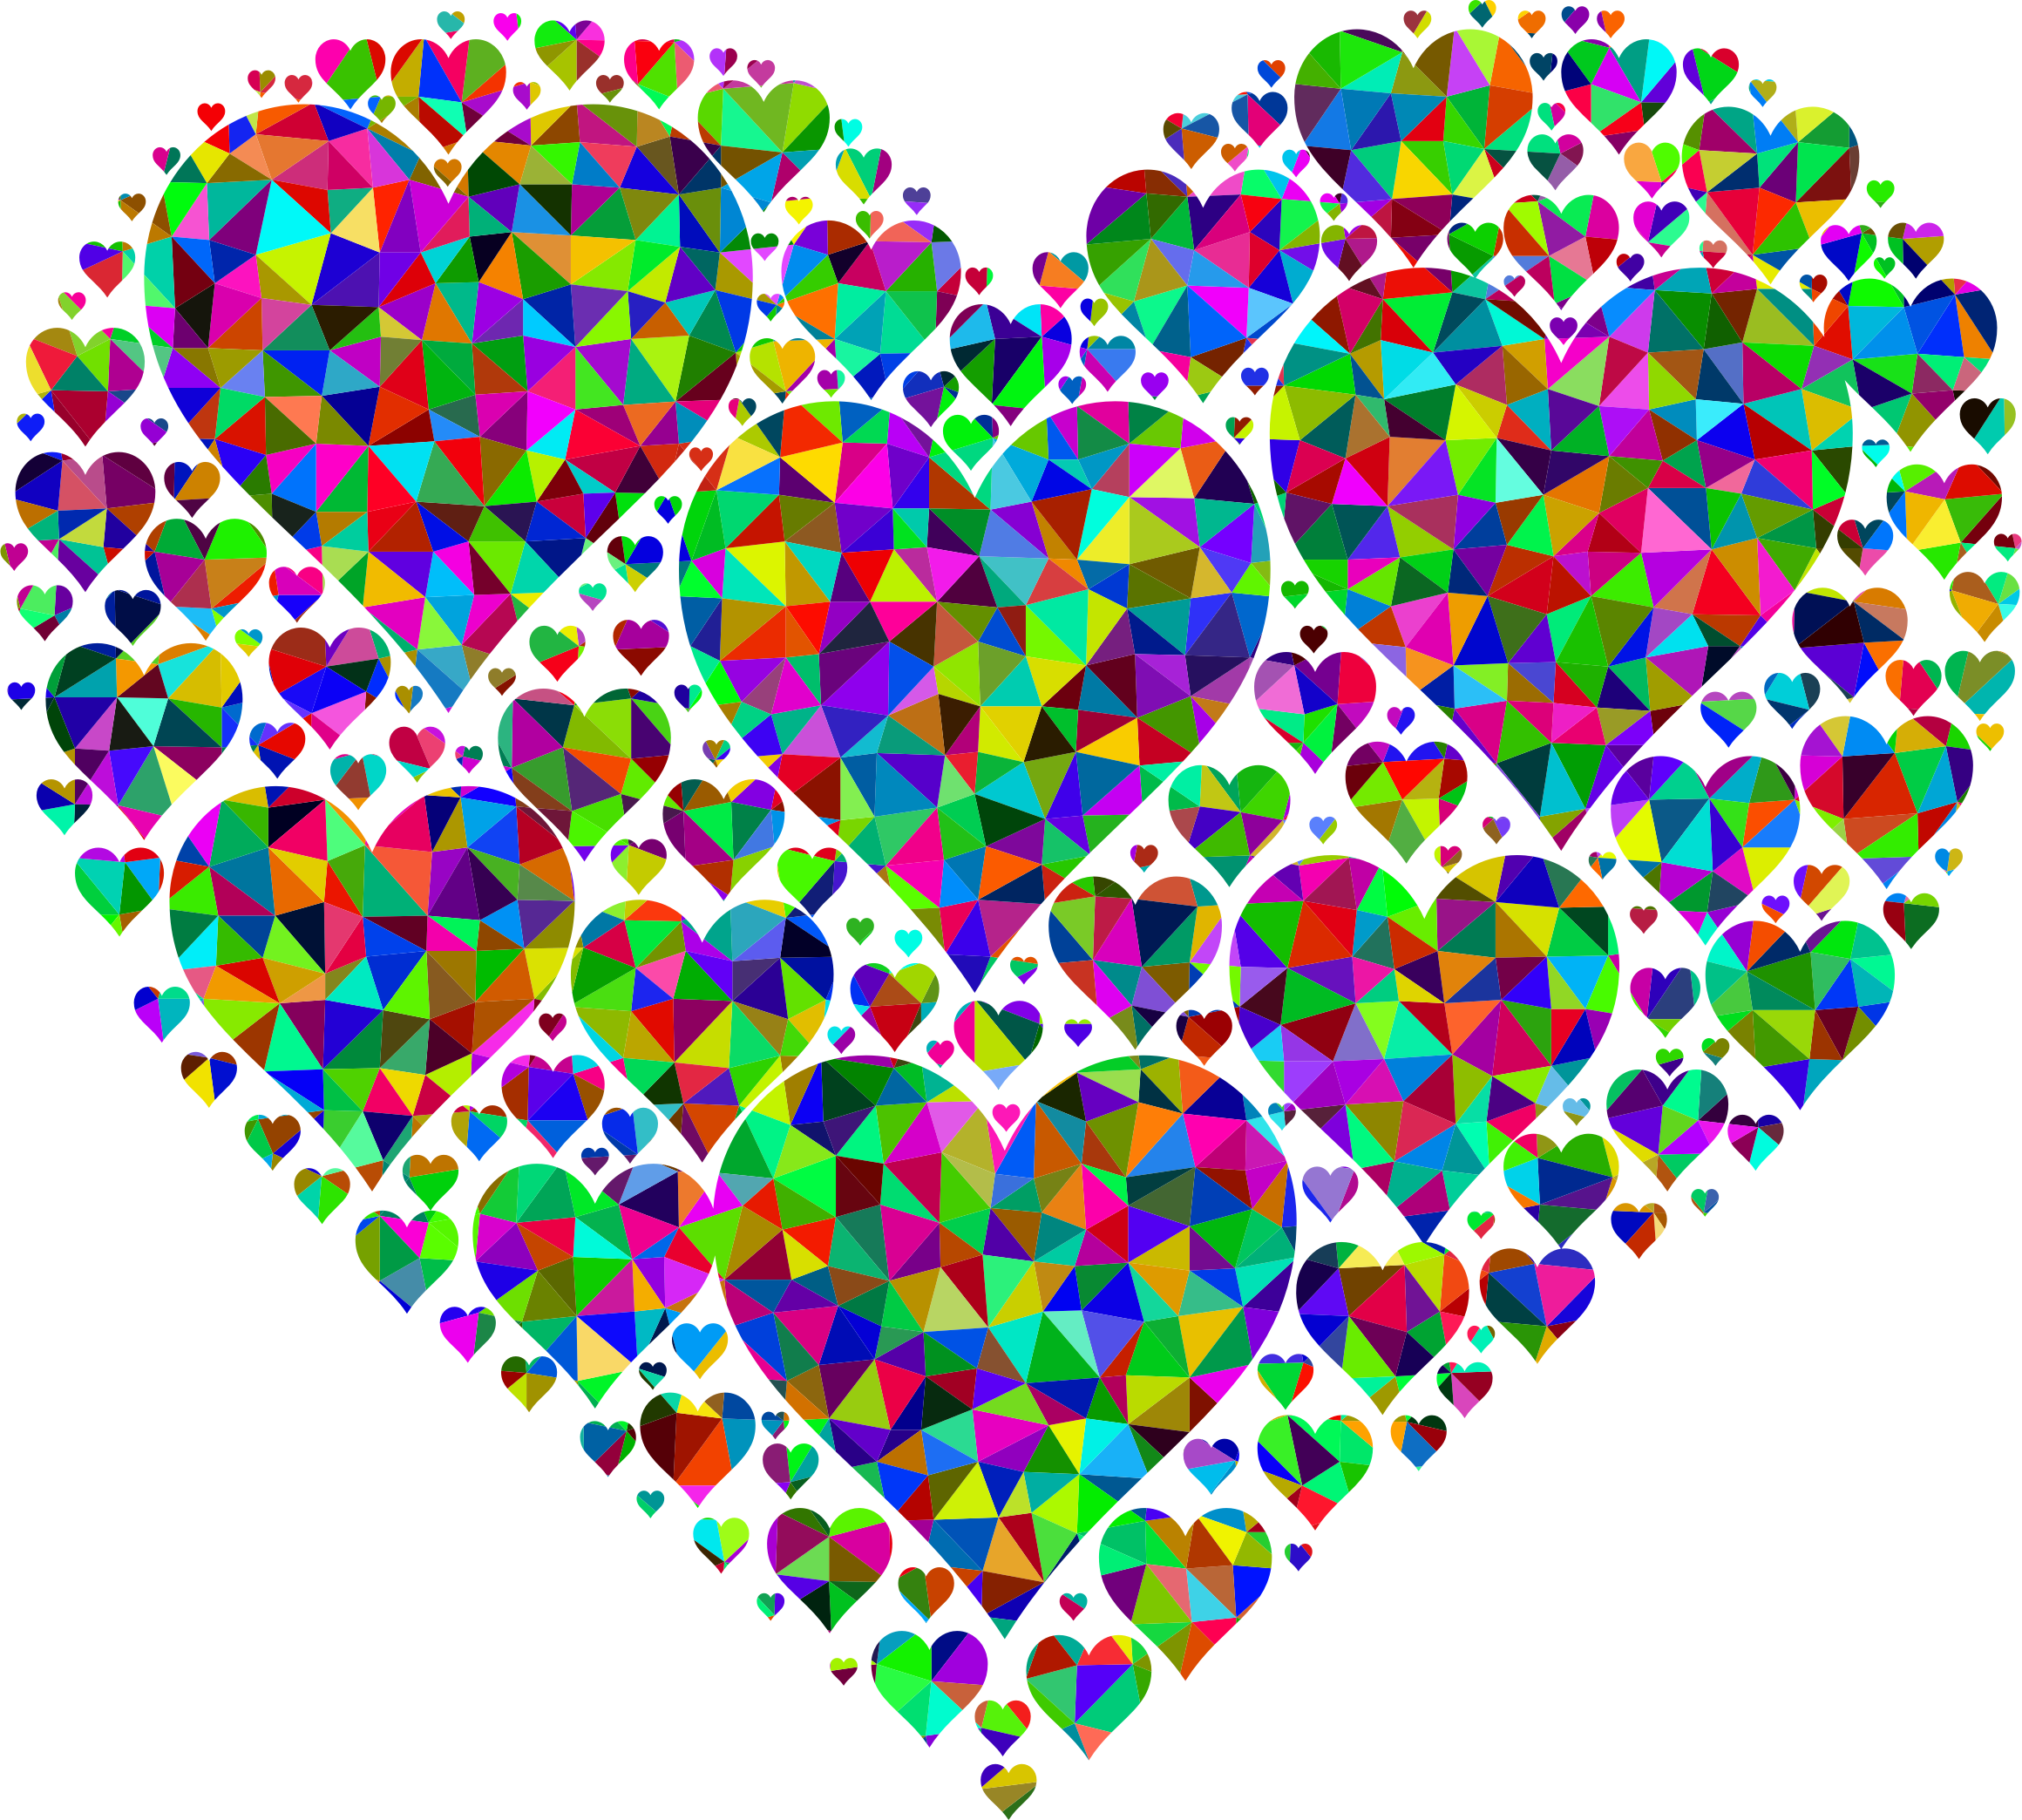 Paris clipart prismatic. Low poly hearts in